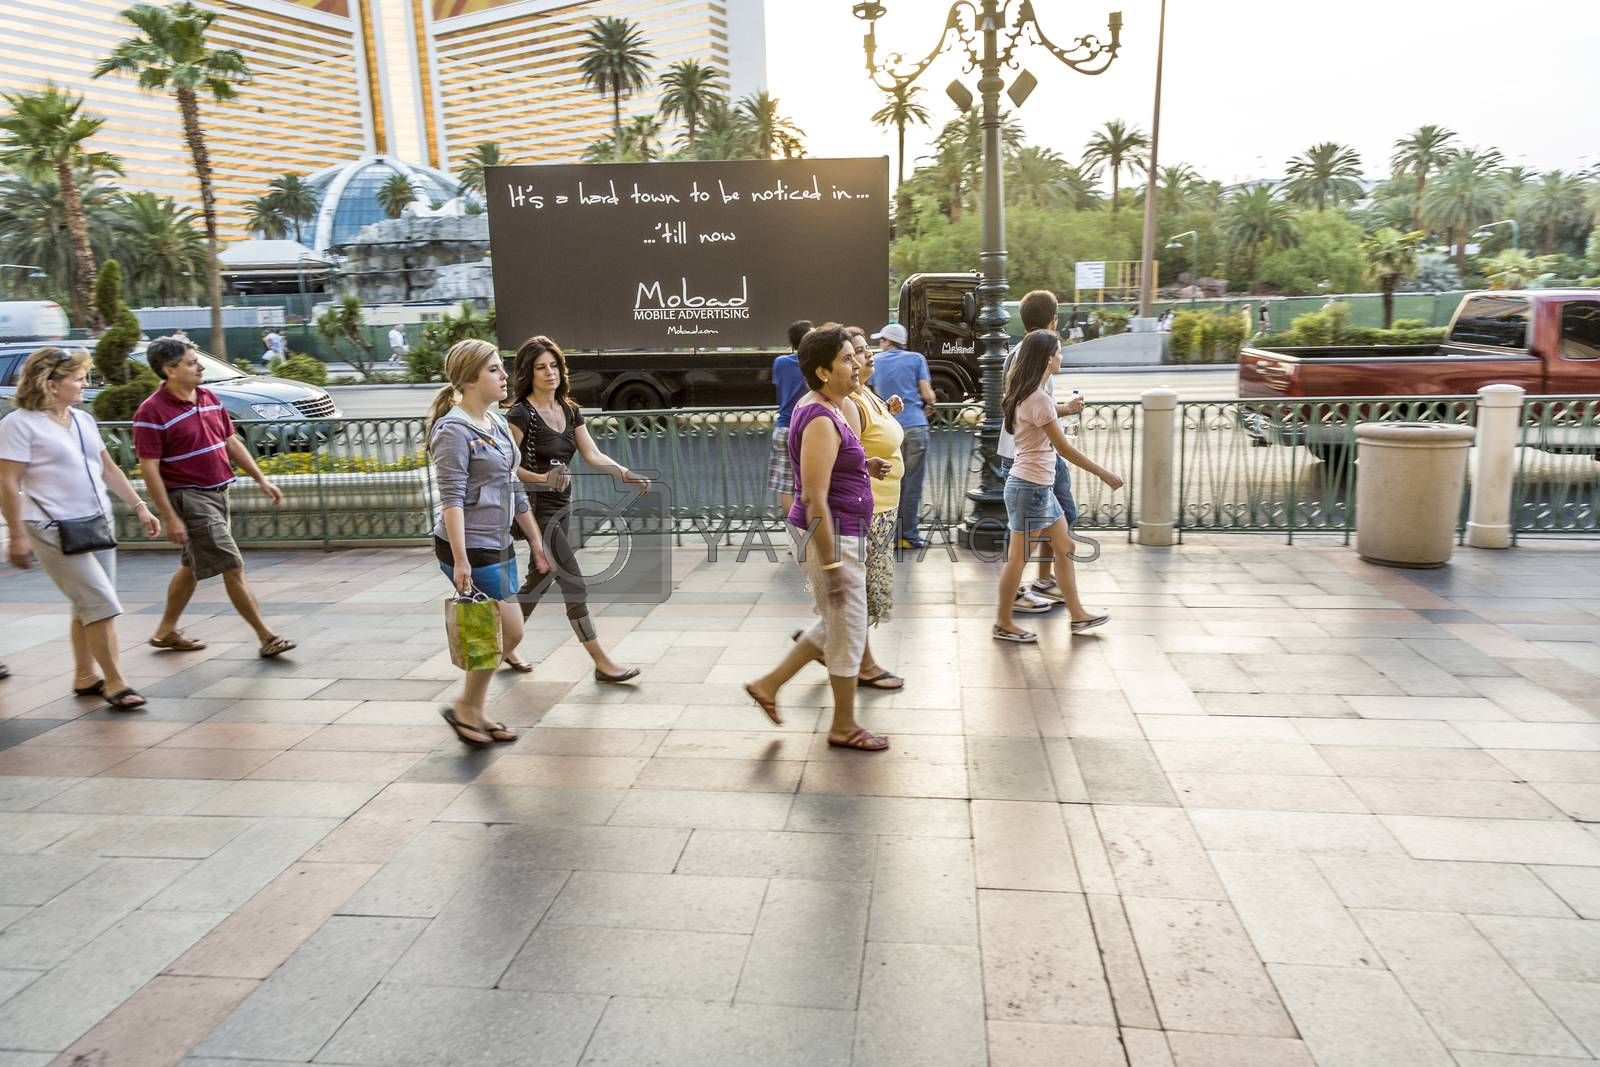 LAS VEGAS, NEVADA, USA - JULY 17, 2008: Pedestrians in downtown  in Las Vegas, Nevada. The population of Las Vegas about 600,000 people